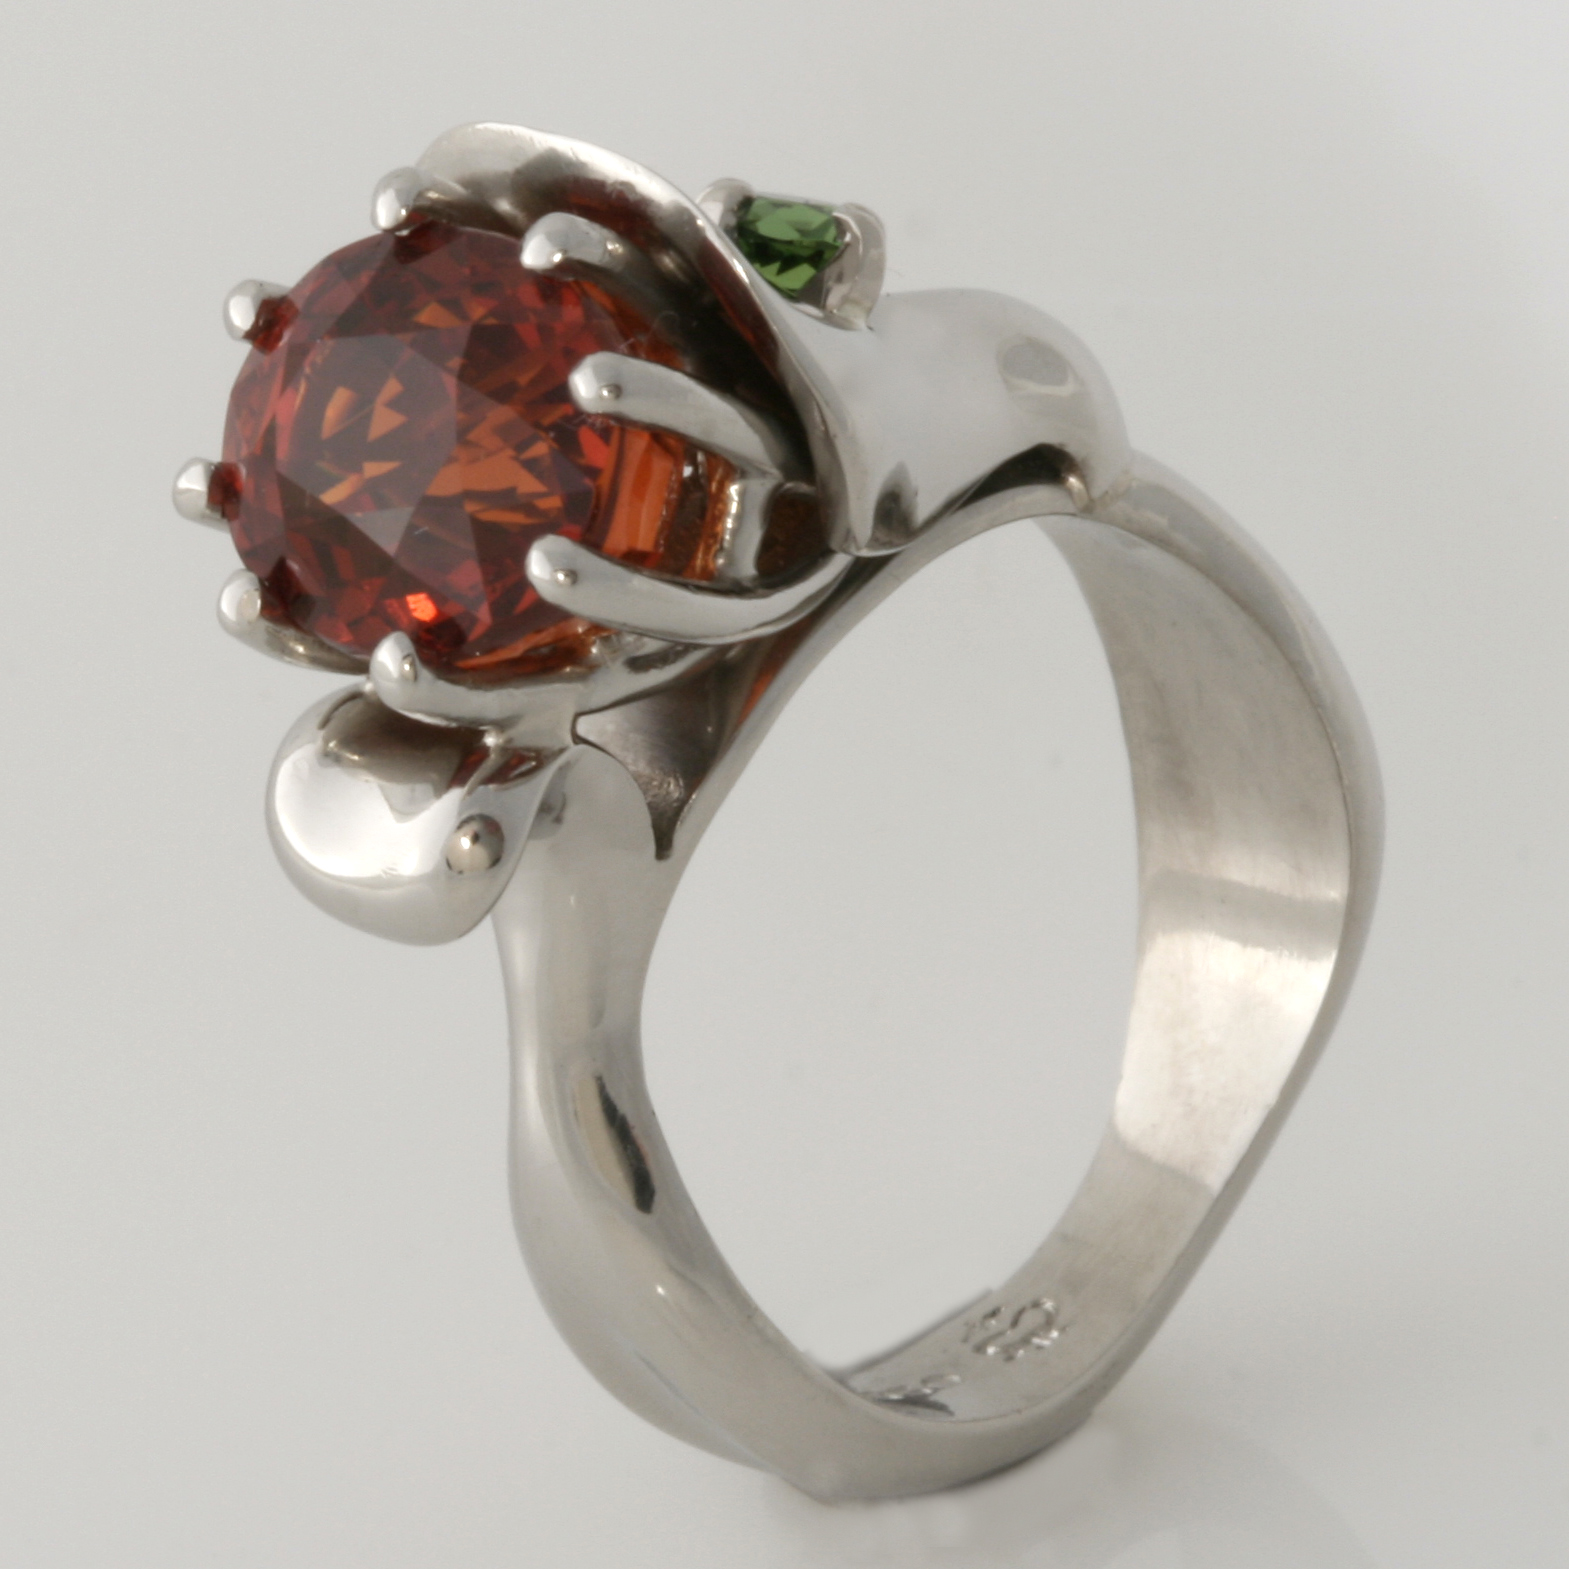 bonsai ring 2